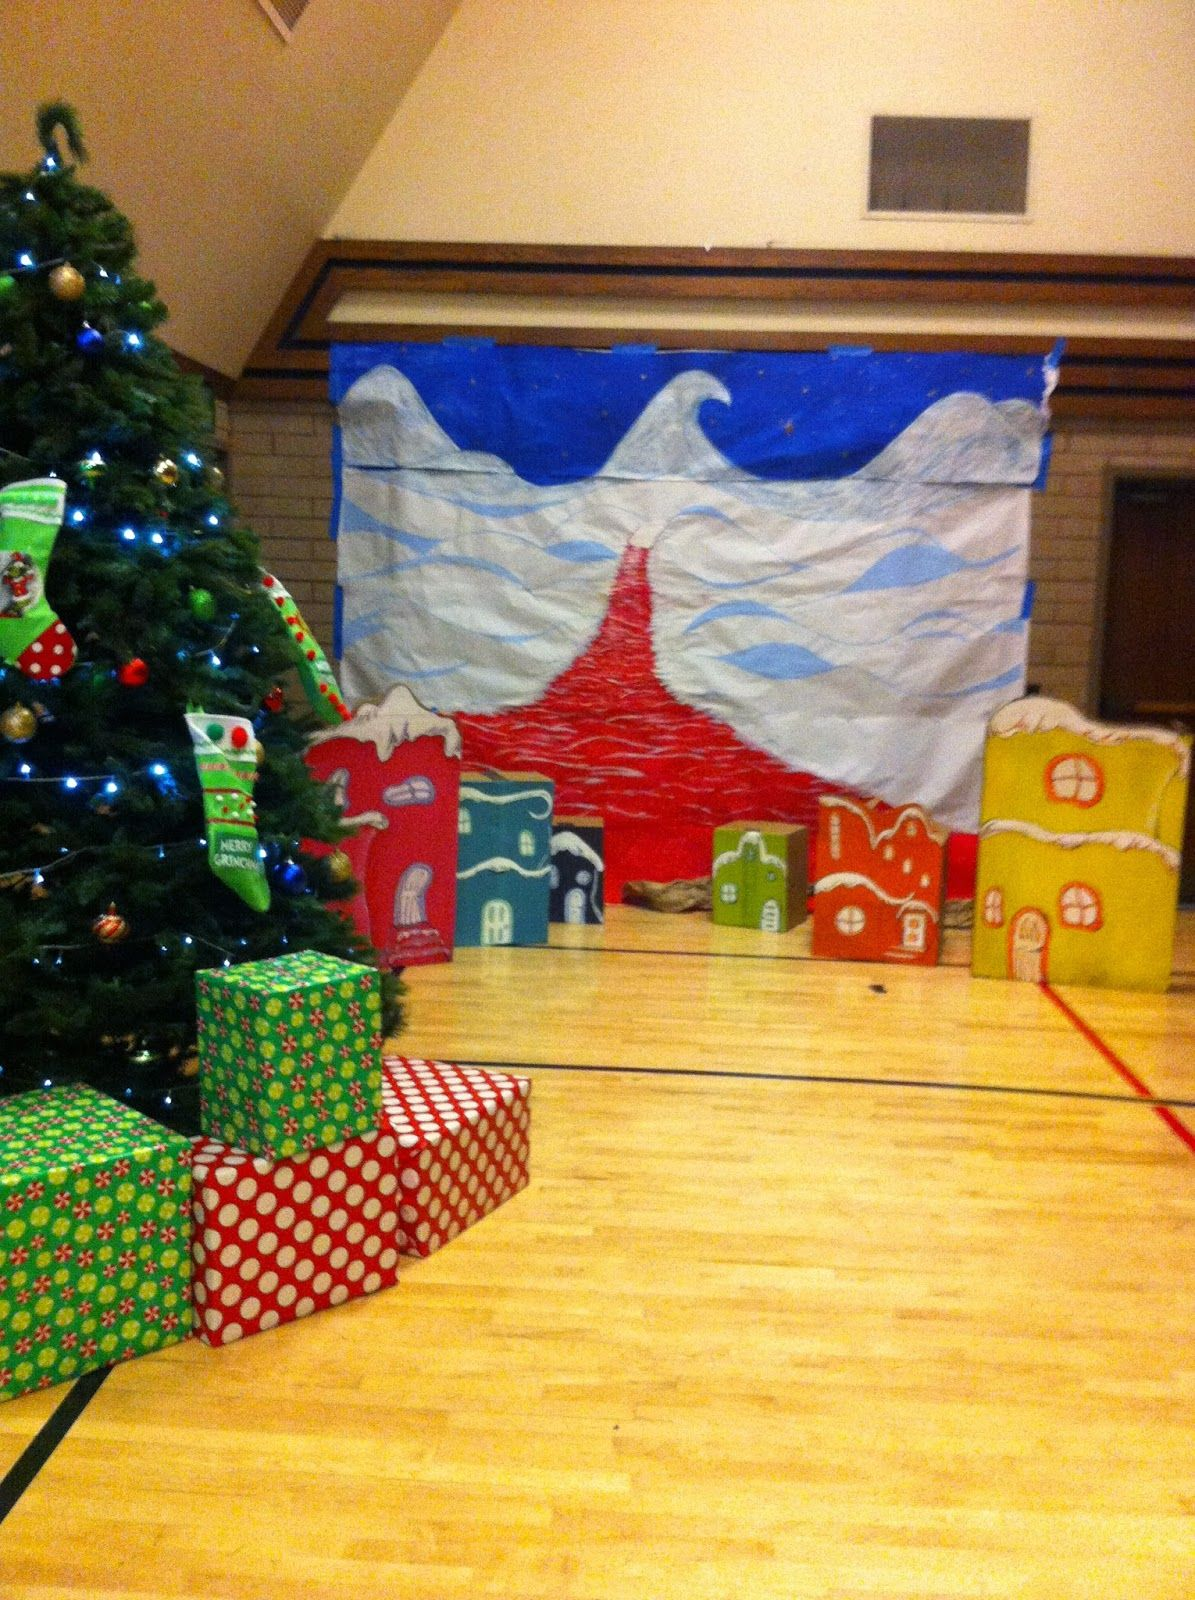 Ideas For Christmas Party Activities Part - 37: How The Grinch Found Christmas: An Lds Ward Christmas Party Or Activity